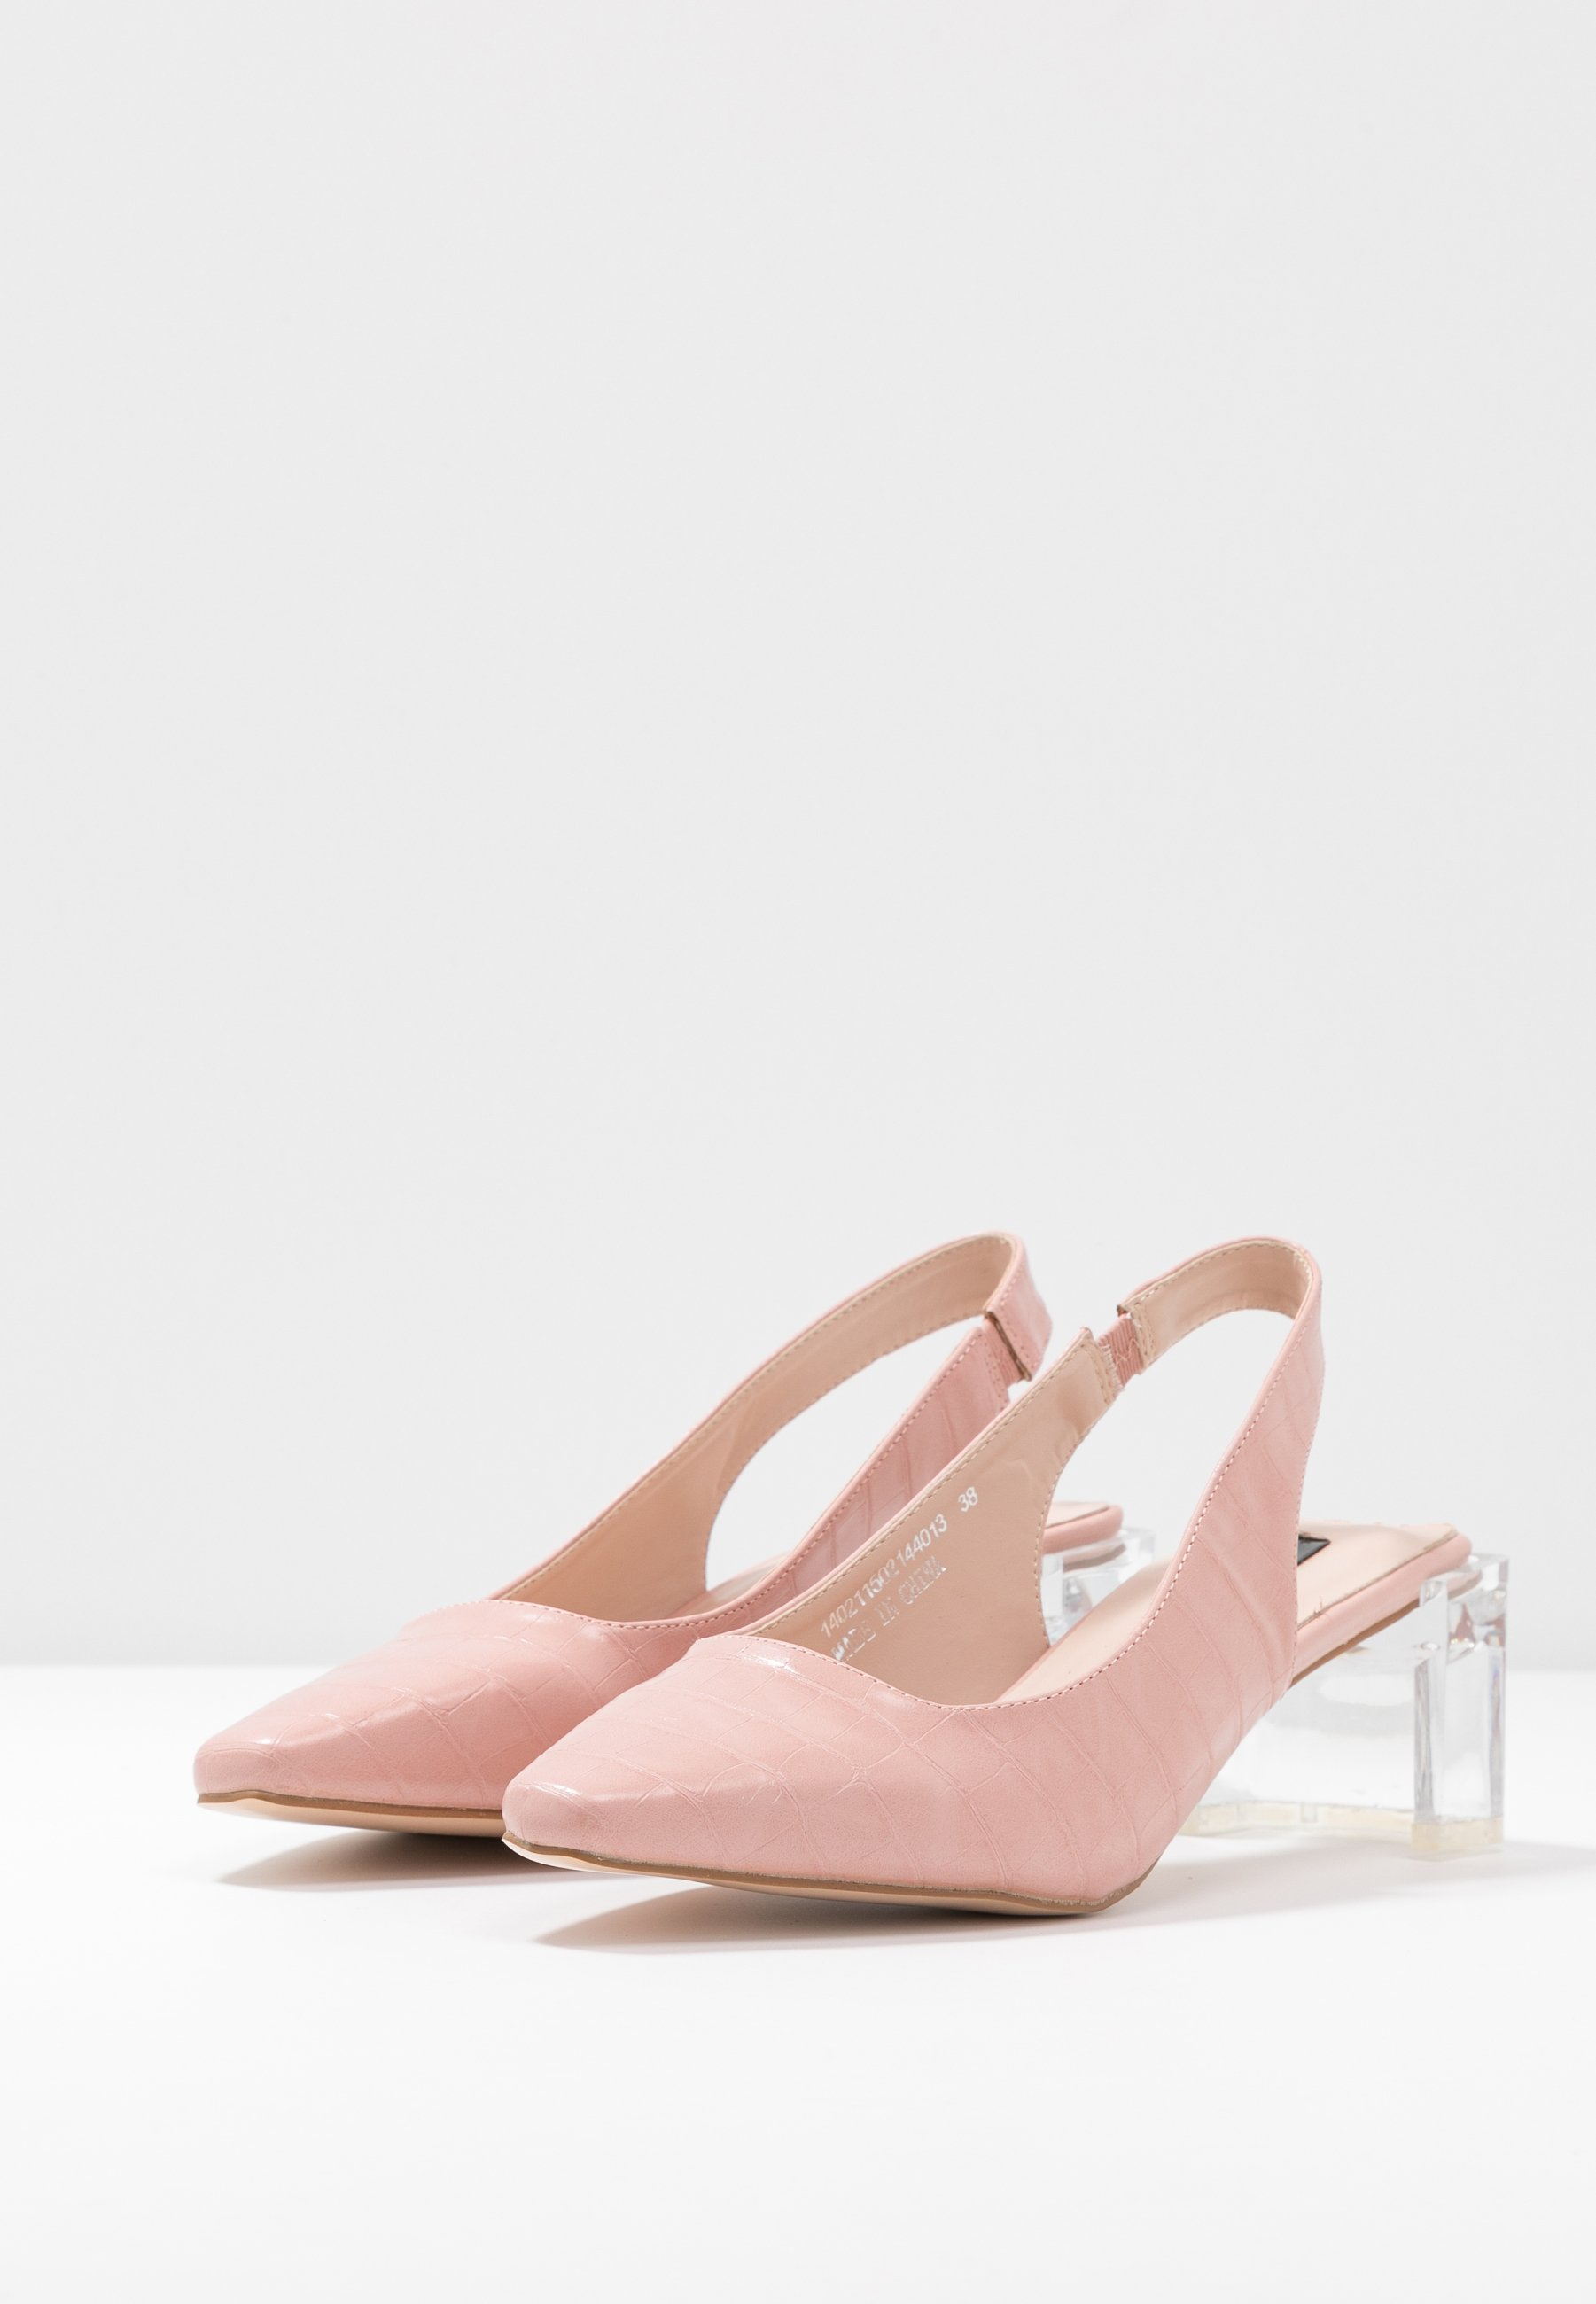 SLINGBACK HEEL SHOE Pumps nude